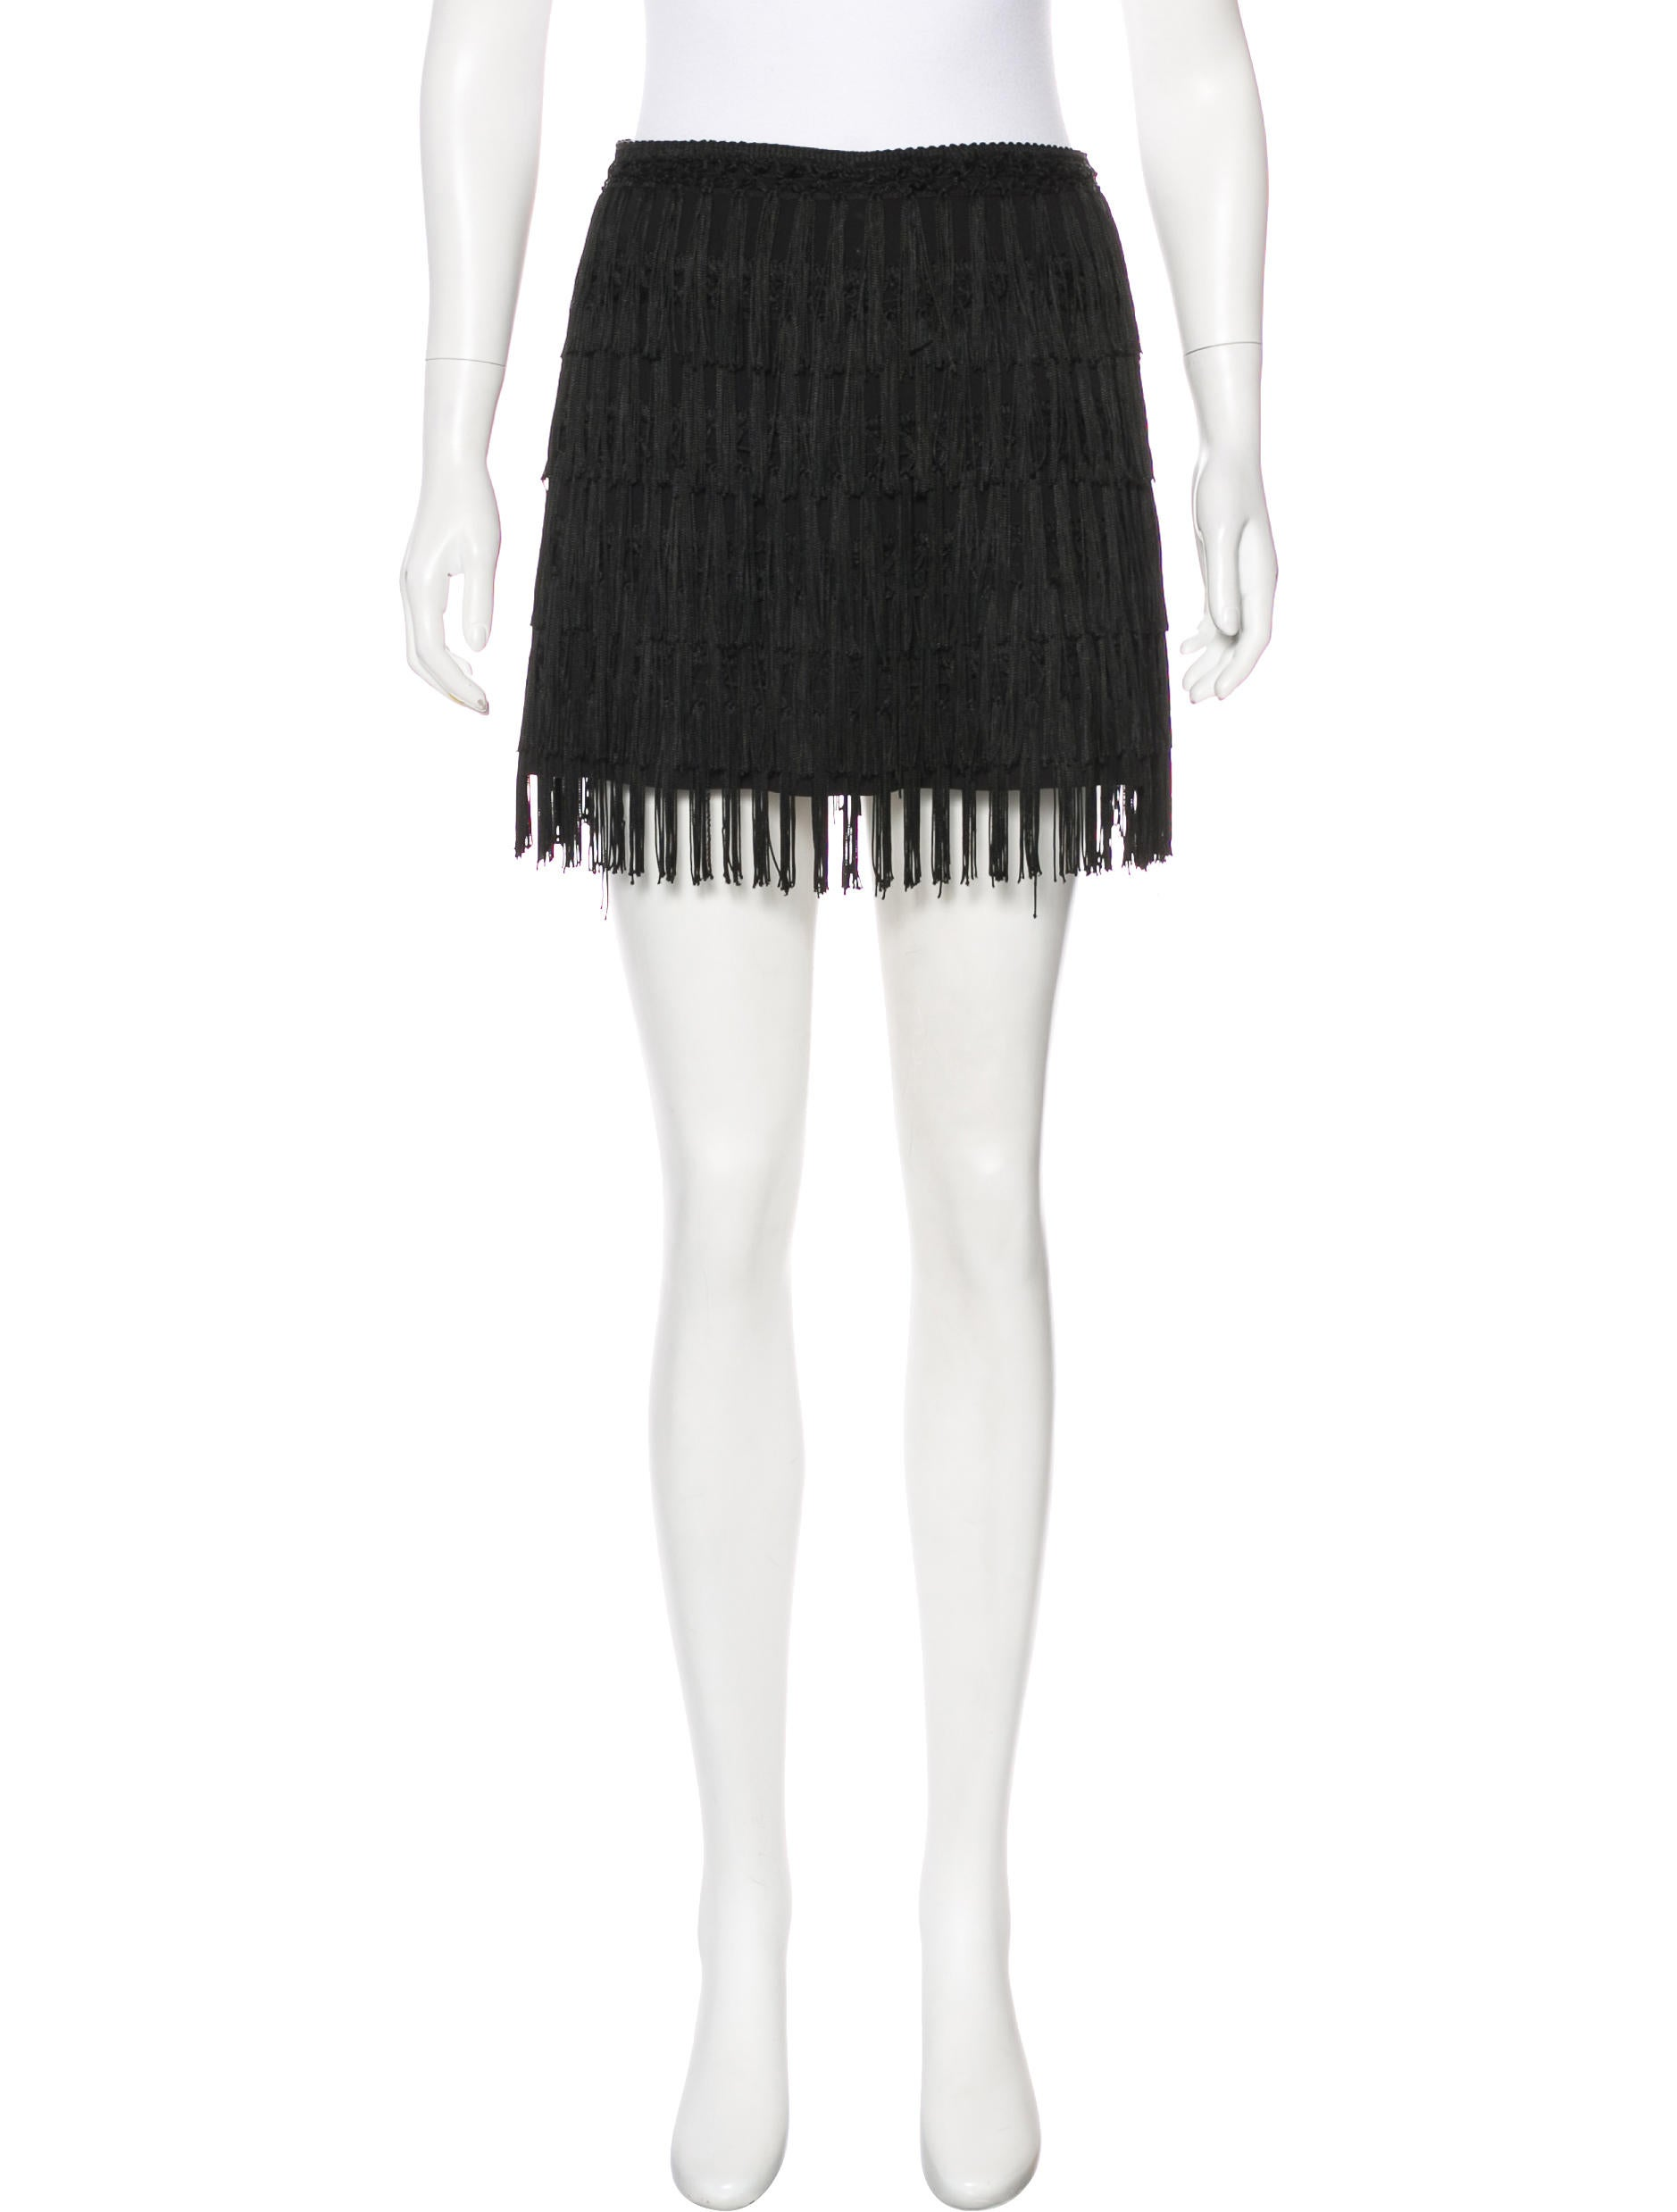 Reformation Fringe Mini Skirt Popular Online How Much Cheap Price Outlet Shop For T3XpuWW6r